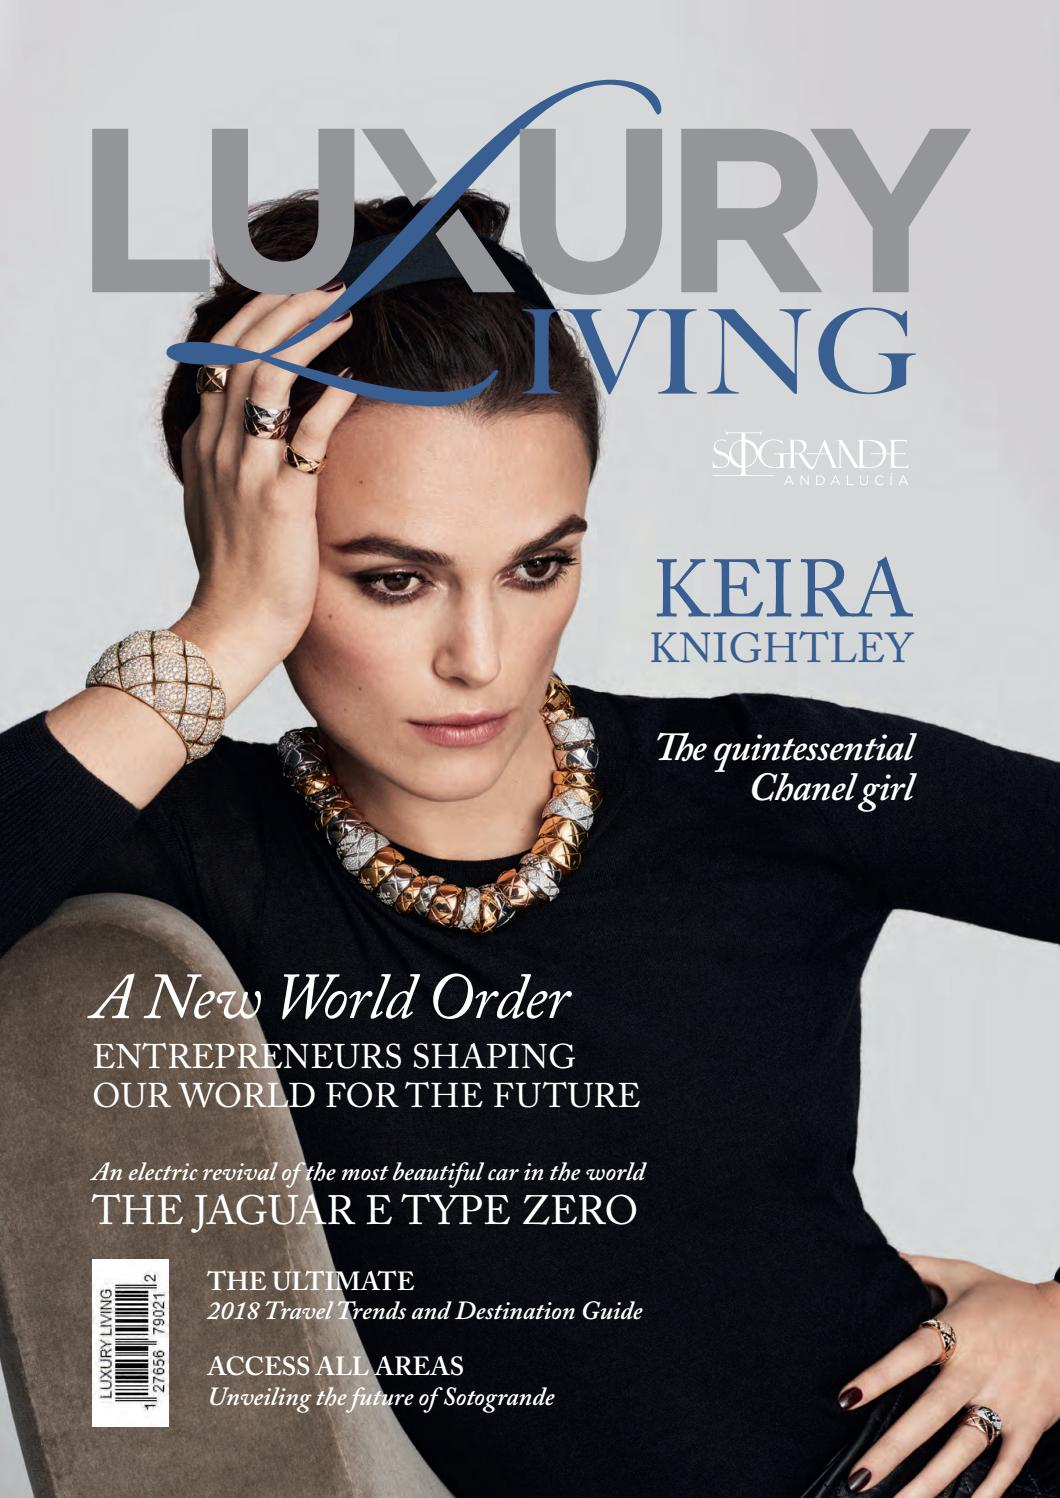 e540d42eab Luxury Living Magazine by ClearVision Marketing - issuu